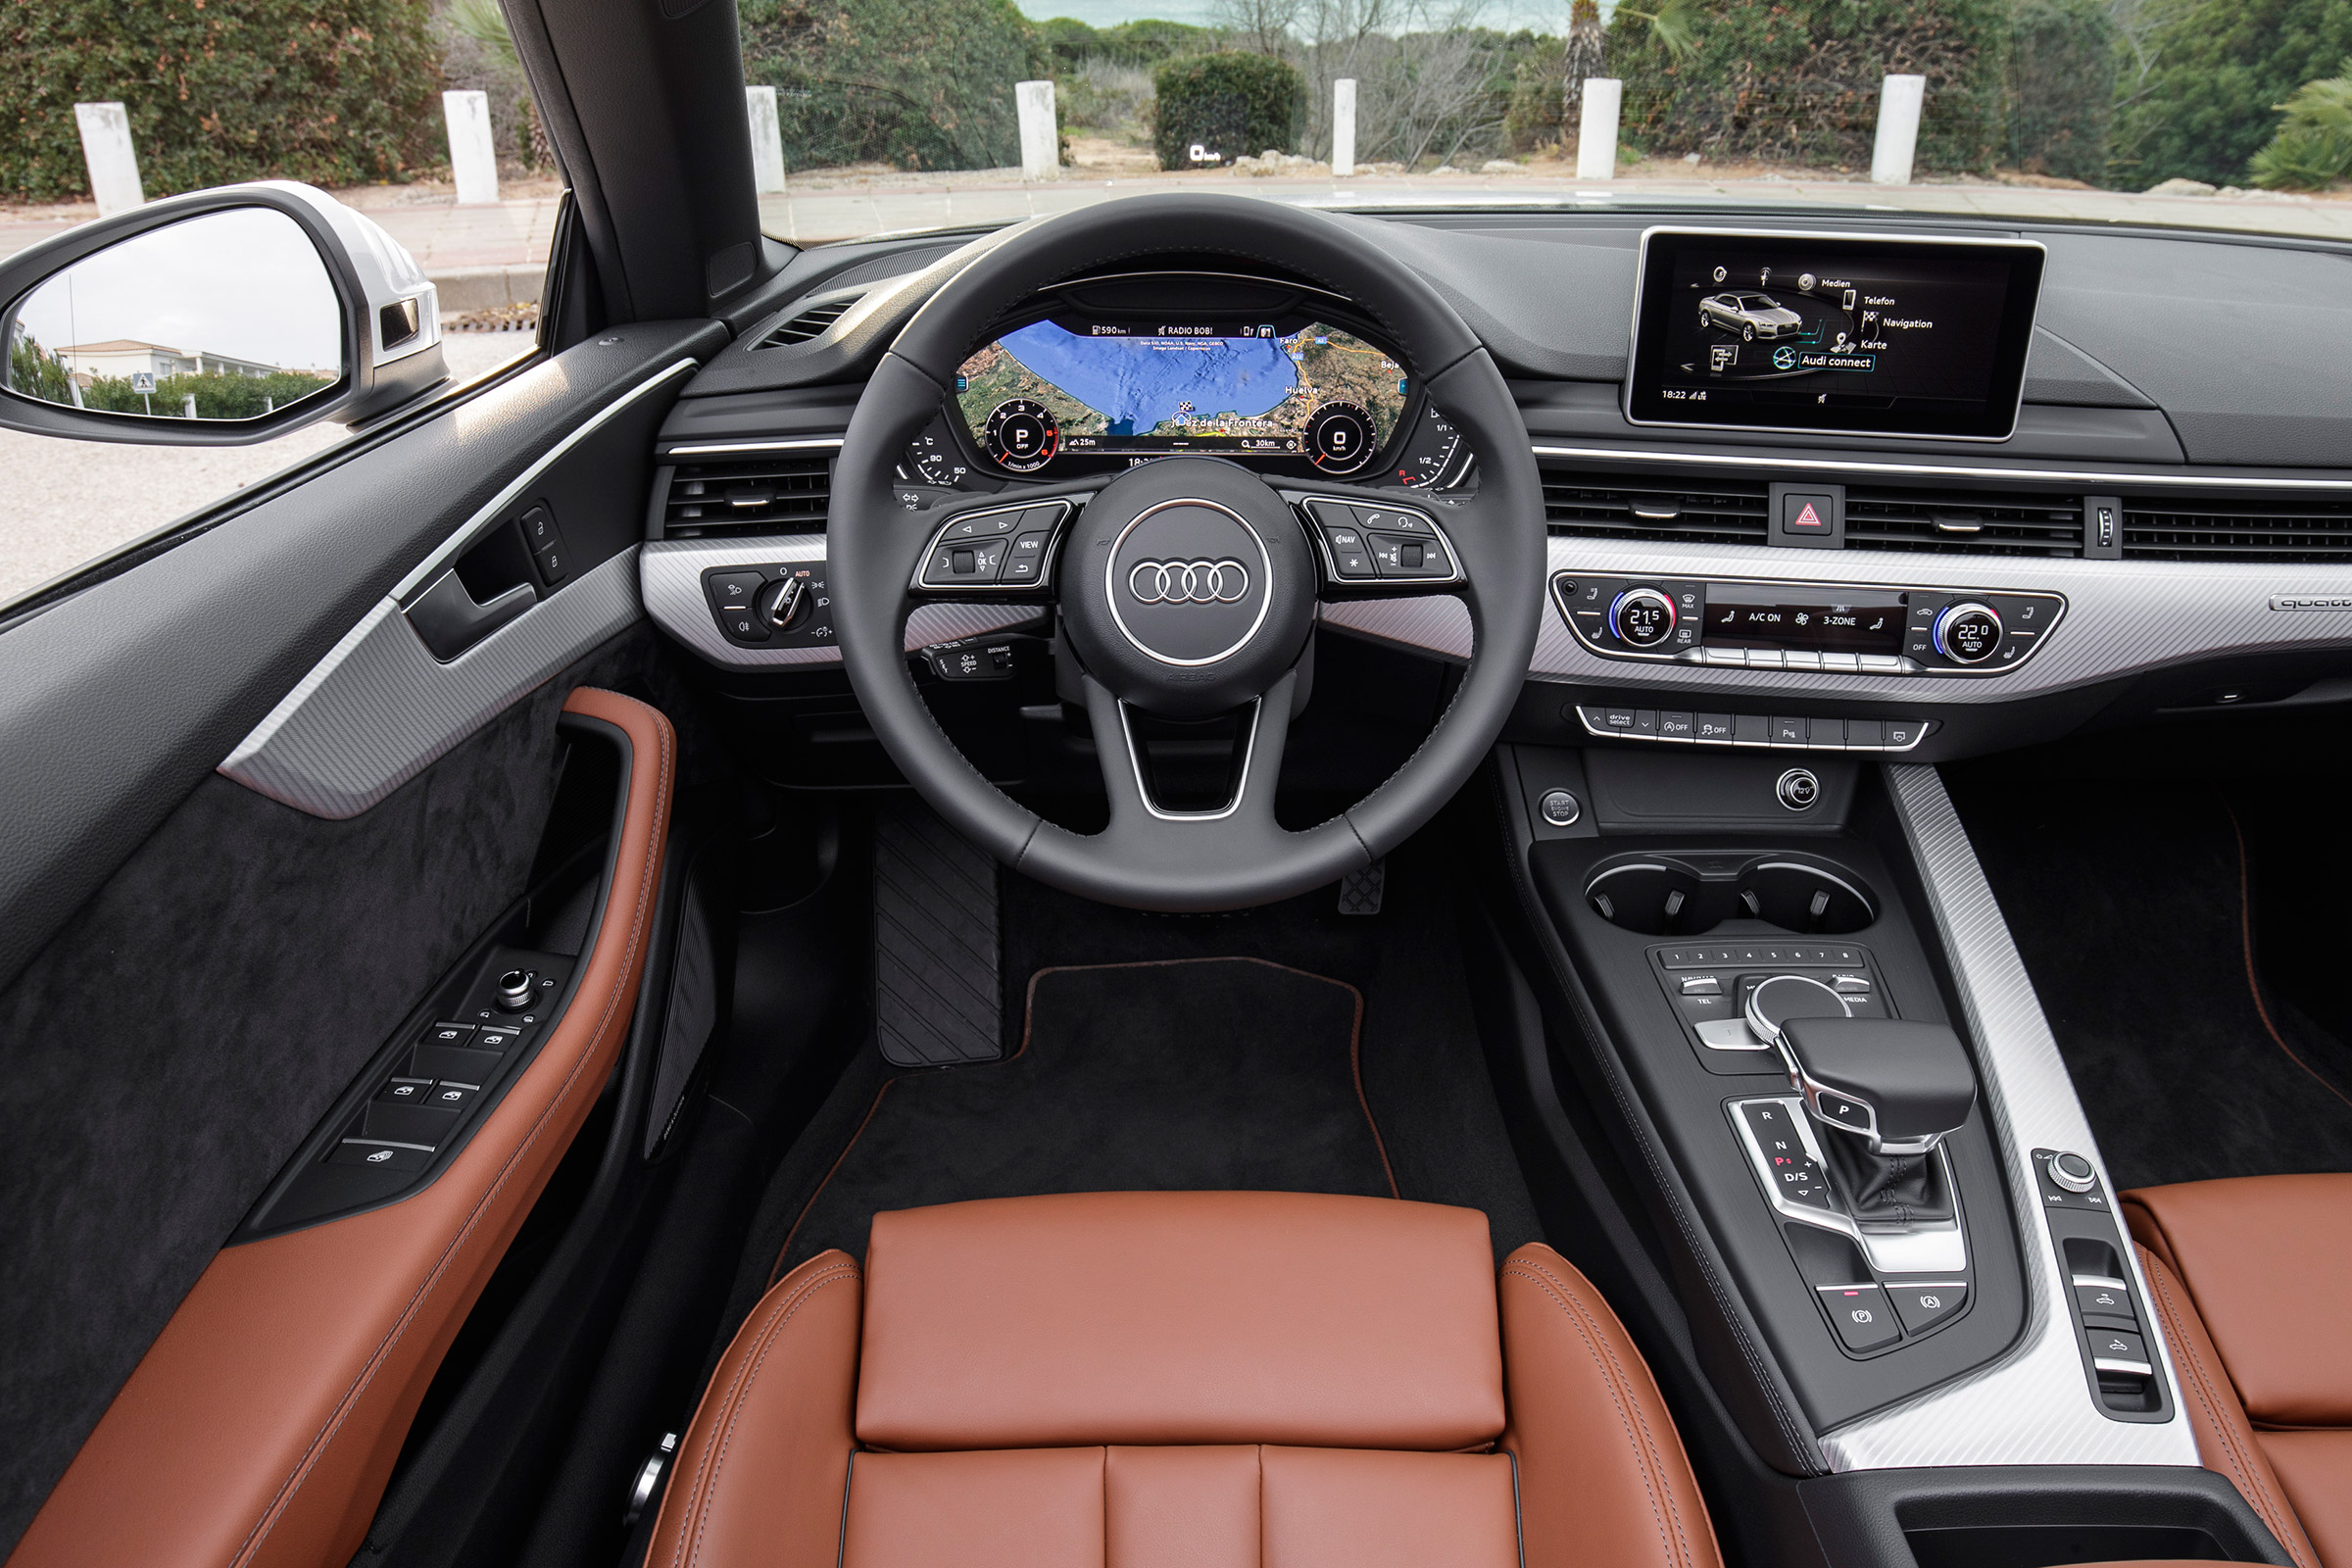 2017 Audi A5 Cabriolet Interior Cockpit And Dash (Photo 8 of 18)